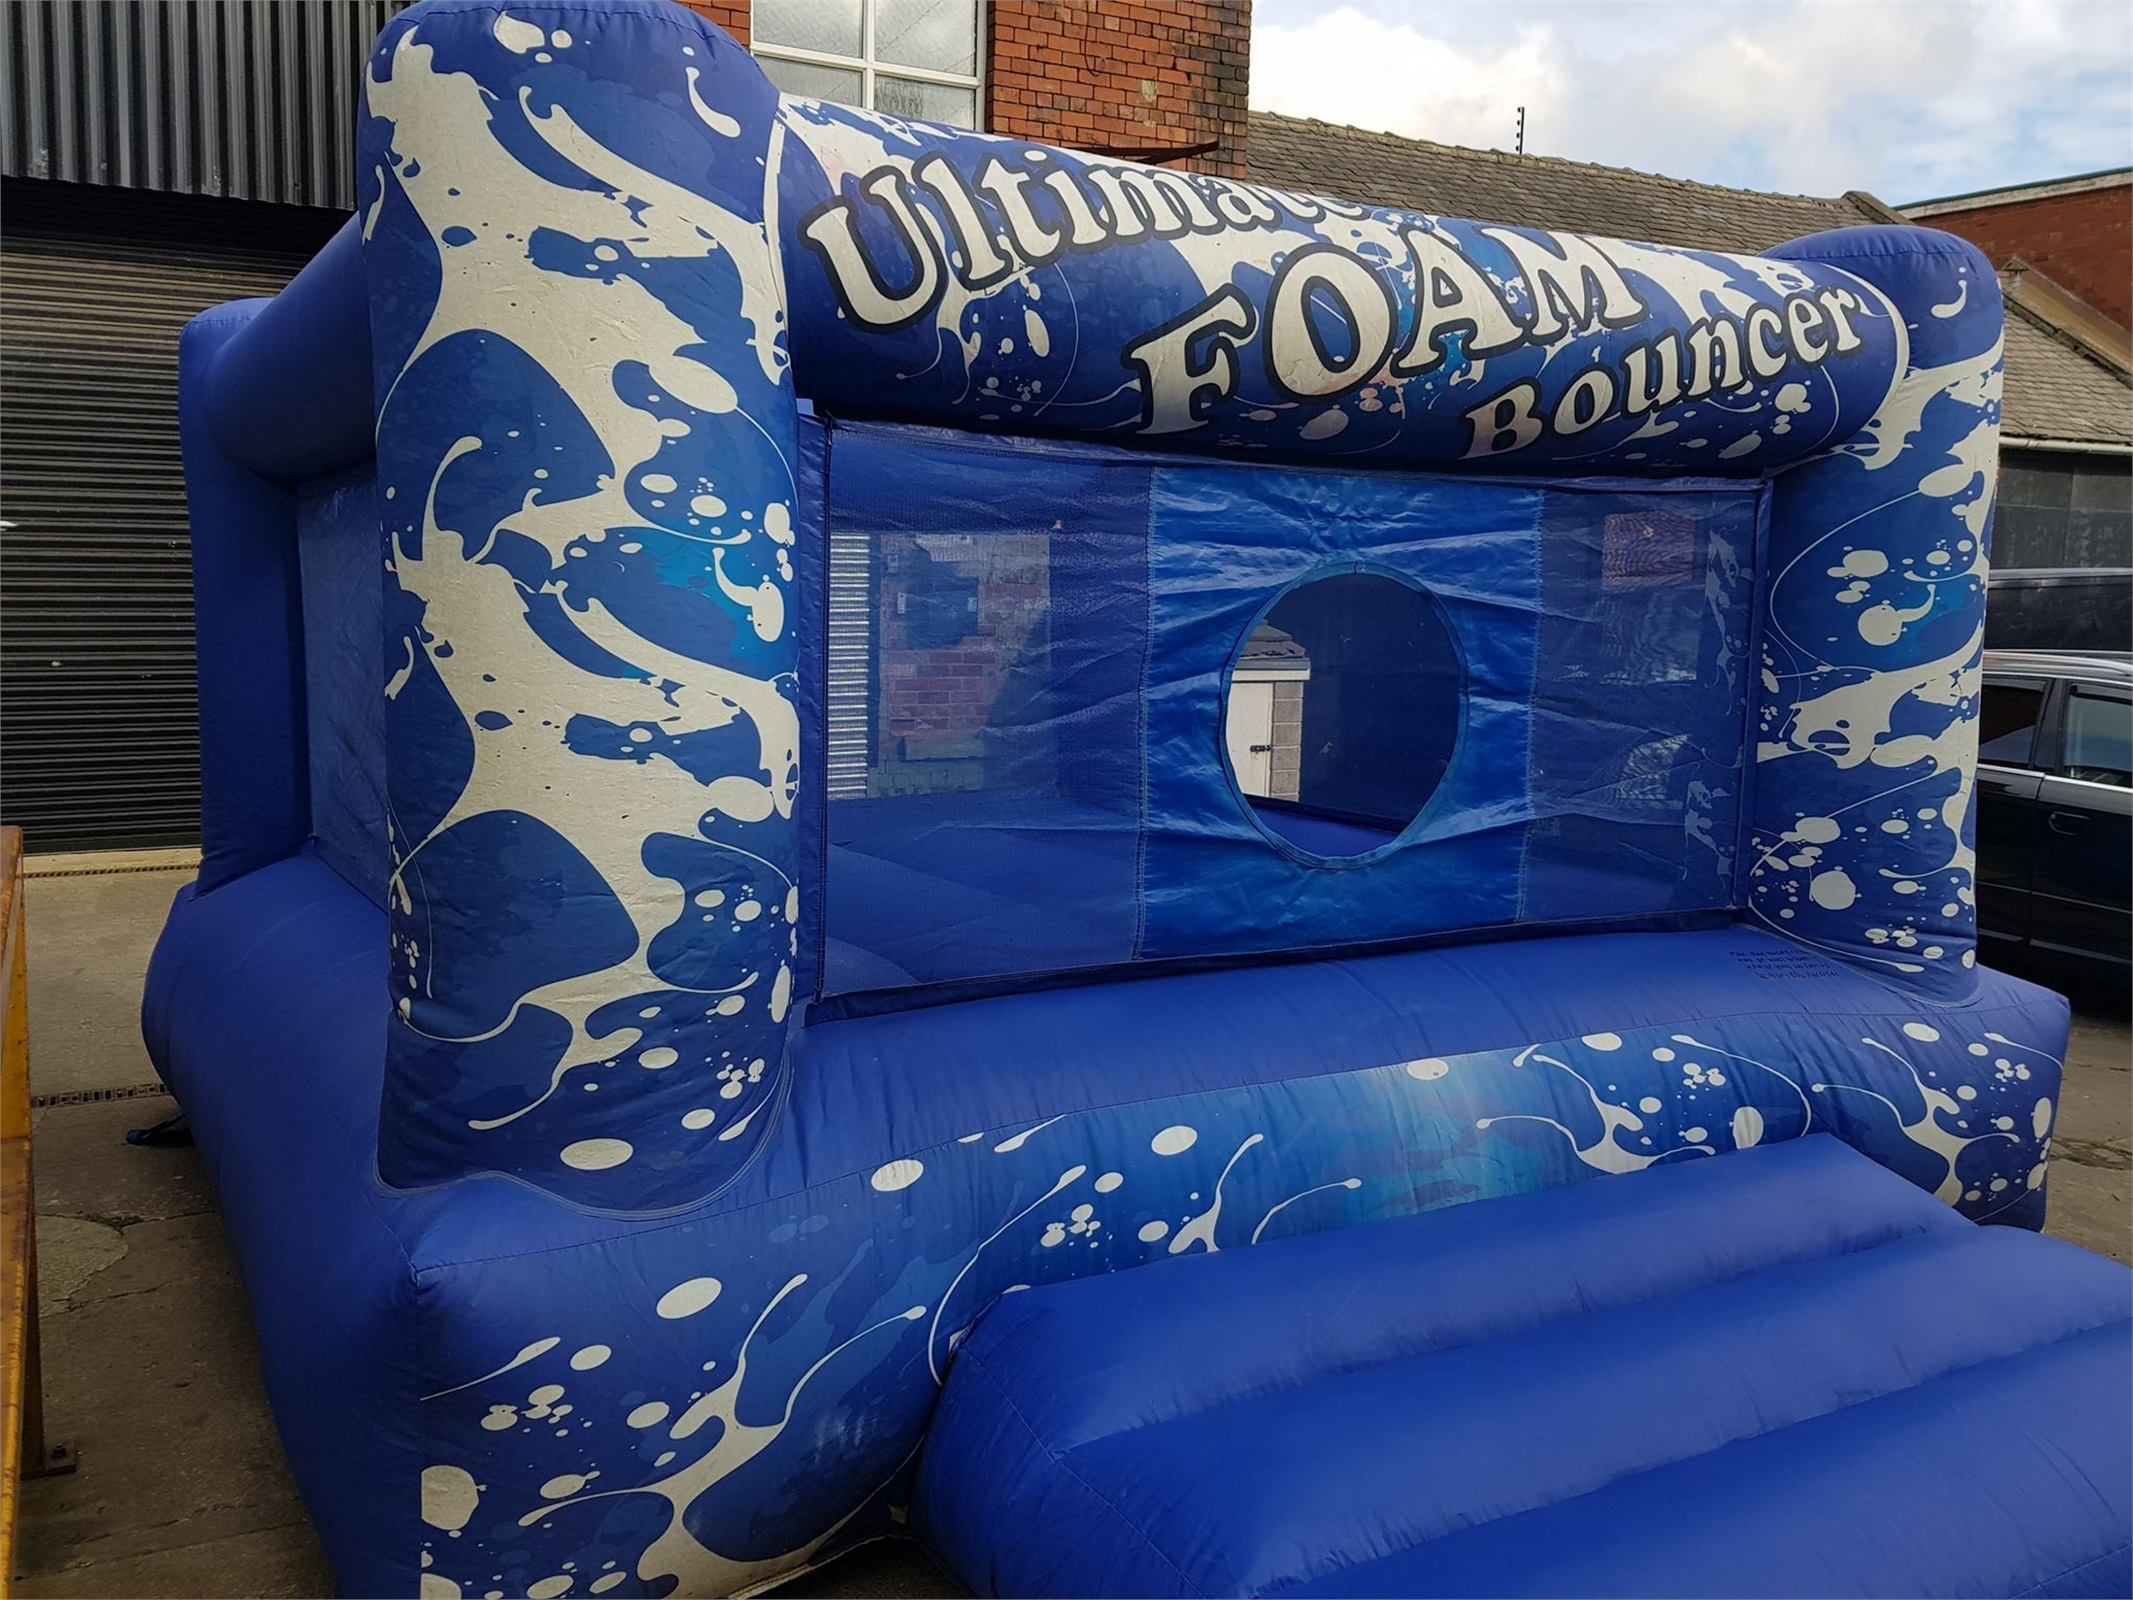 Used Products Bouncy Castle Manufacture Amp Sales In